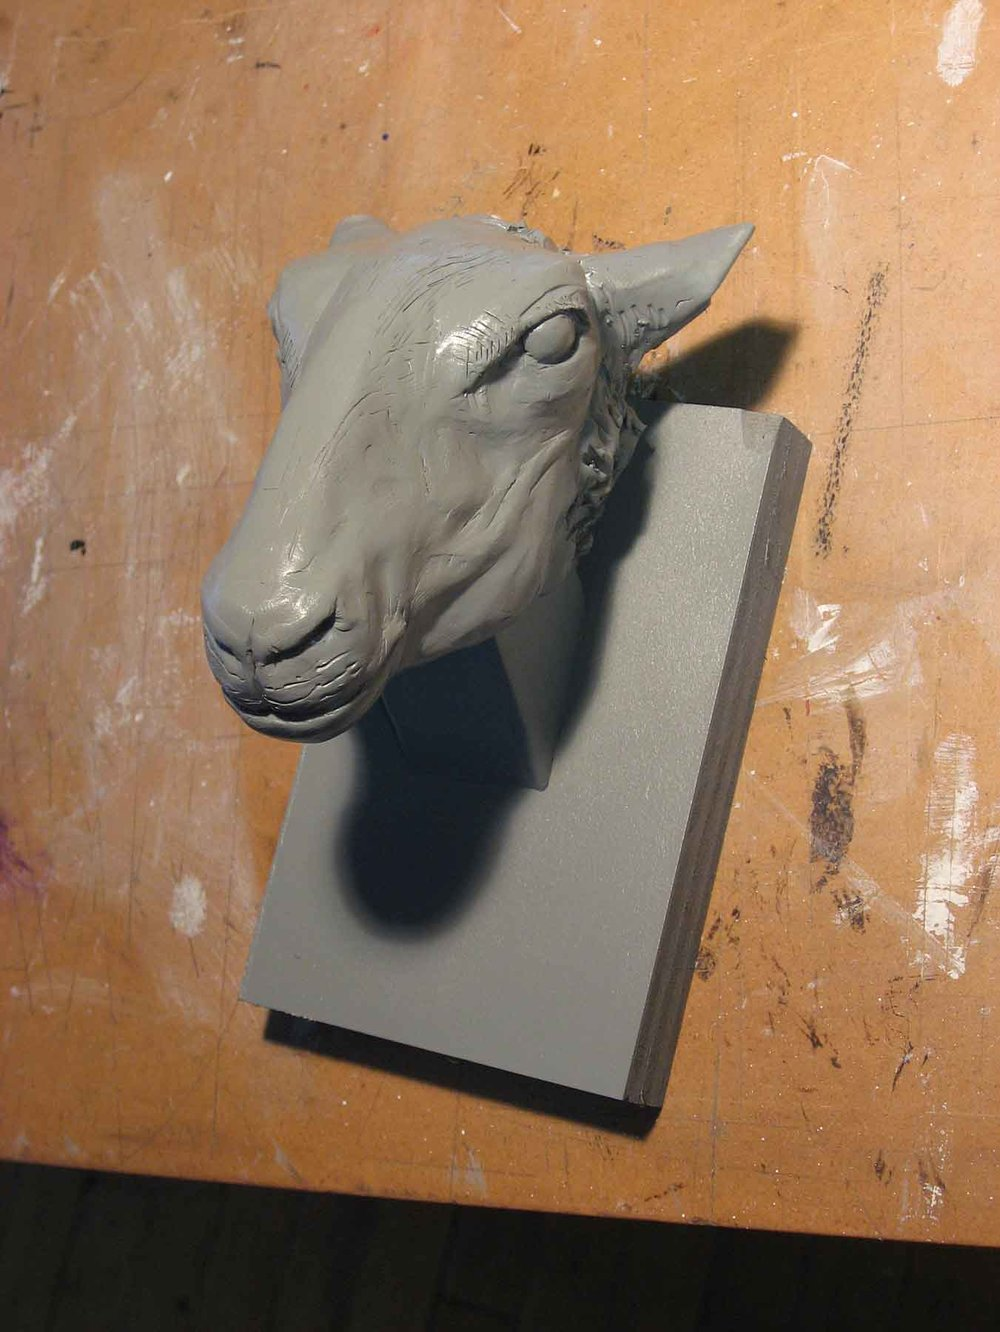 And the final state: baked Sculpey once again, but painted gray. I think I added the gloss finish to be able to pick out the highlights more easily.